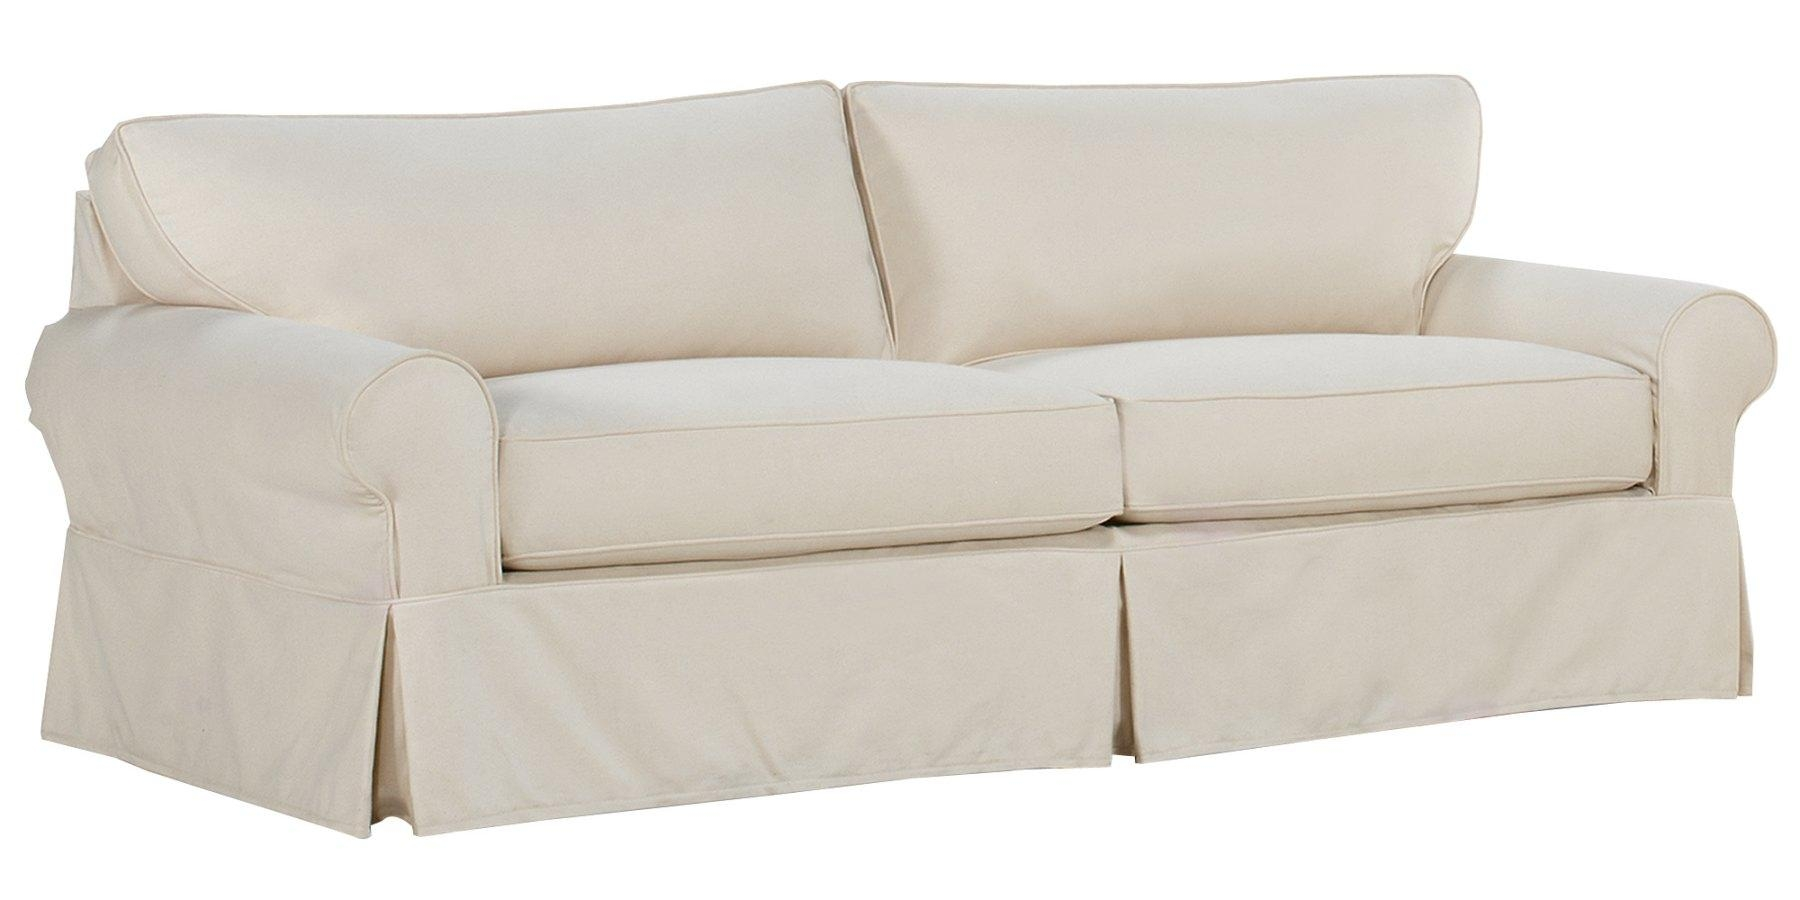 Oversized Sofas And Sofa Slipcover Furniture Online Within Slipcovers Sofas (Image 14 of 20)